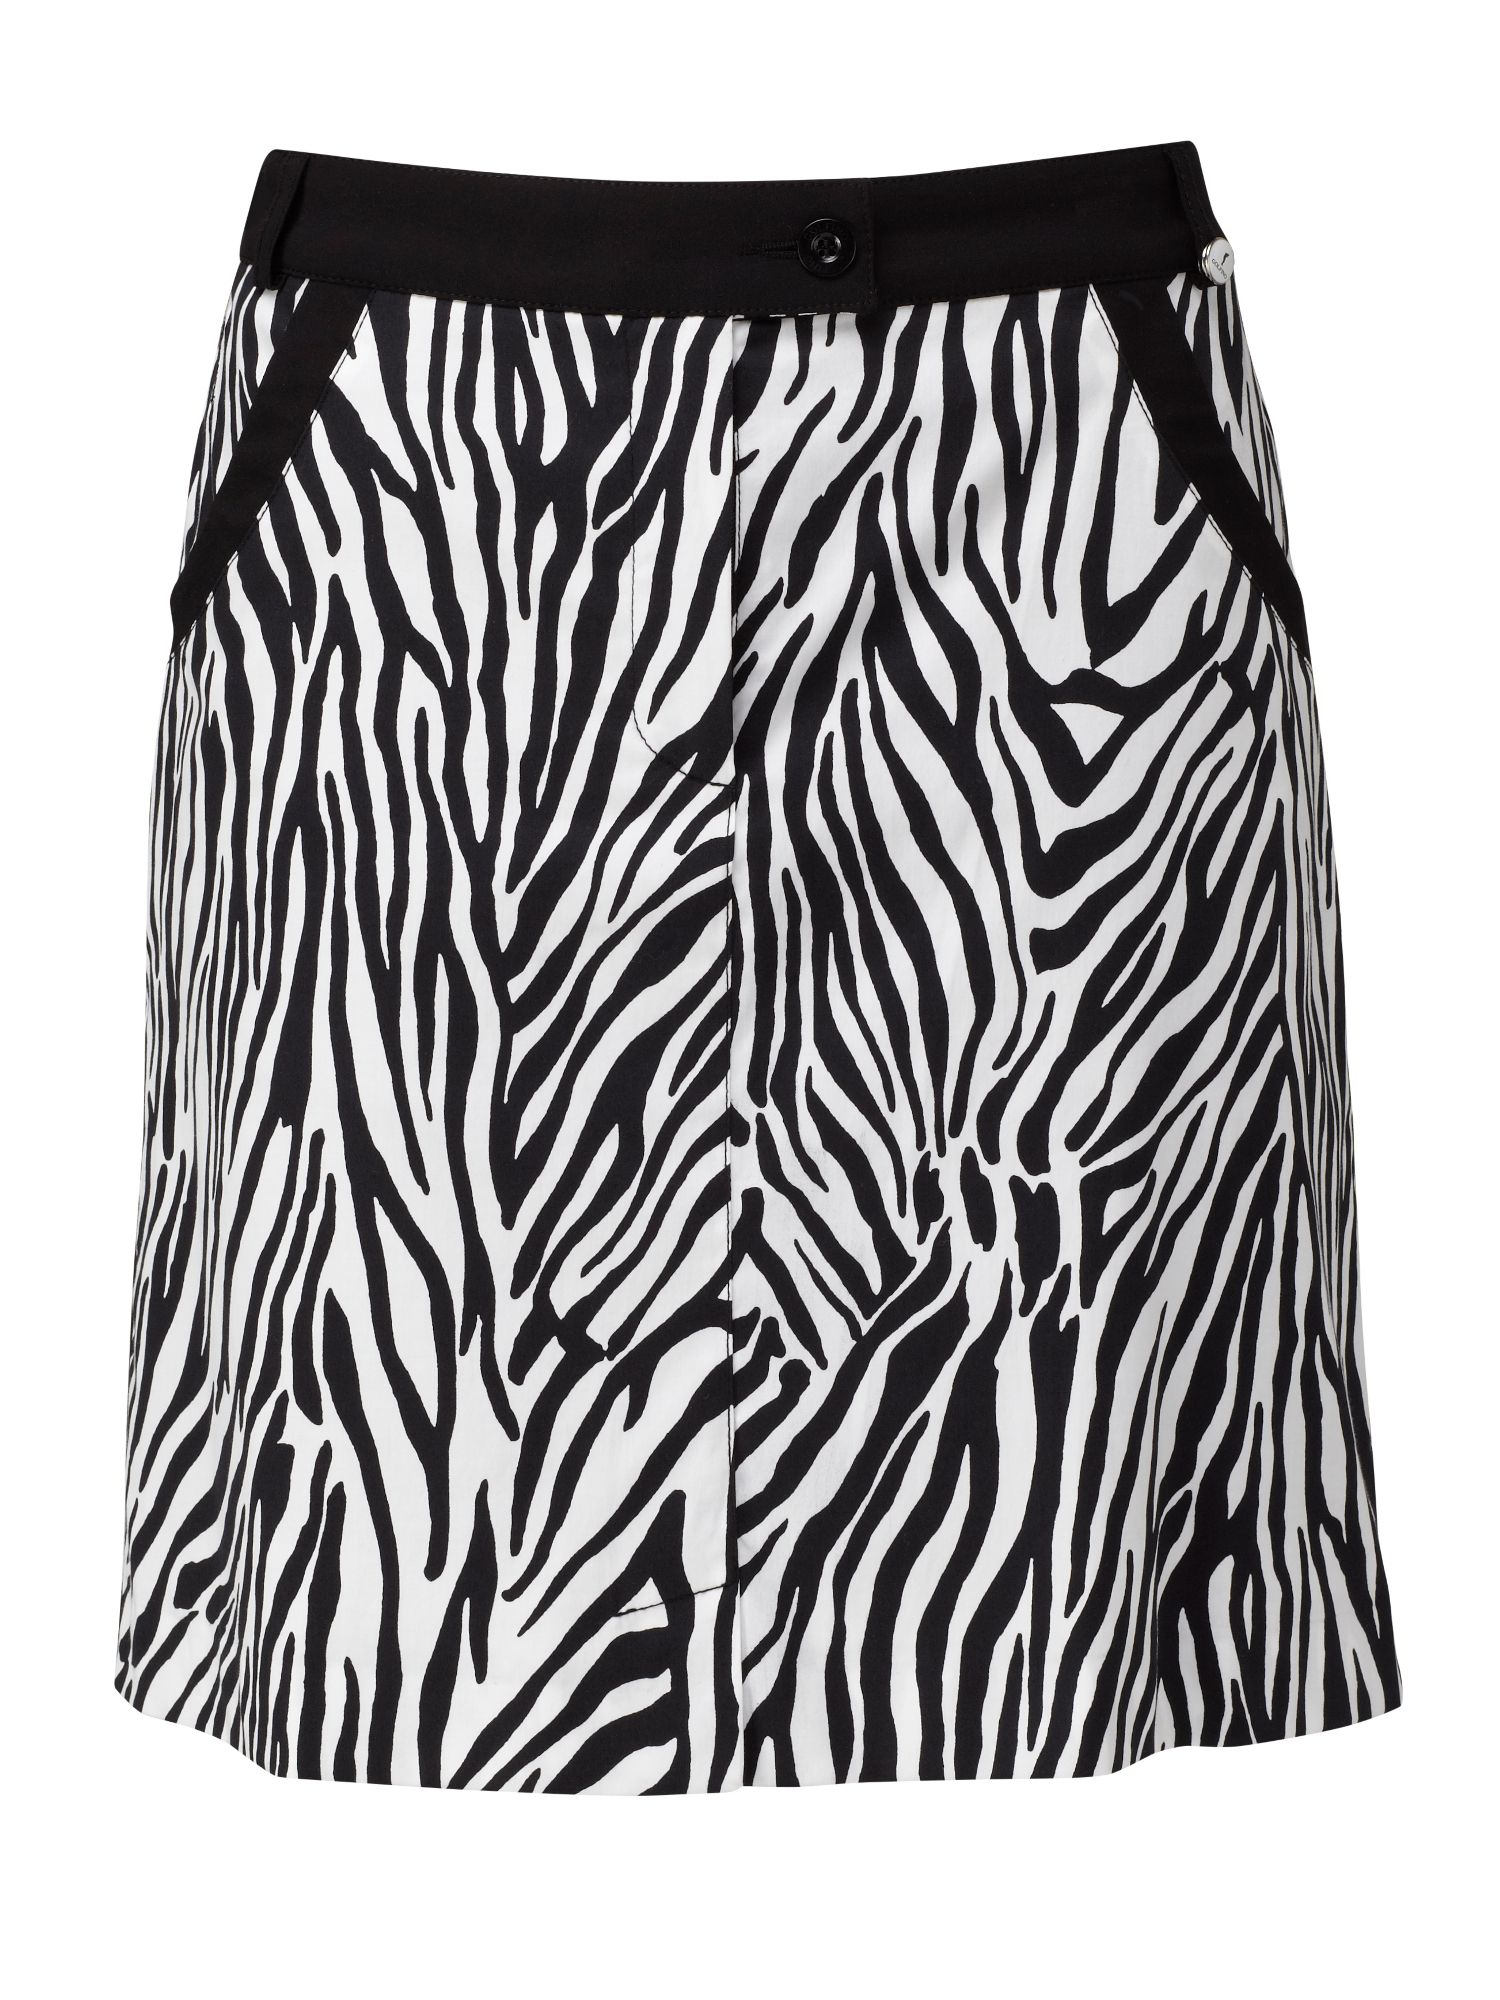 Zebra print stretch skort